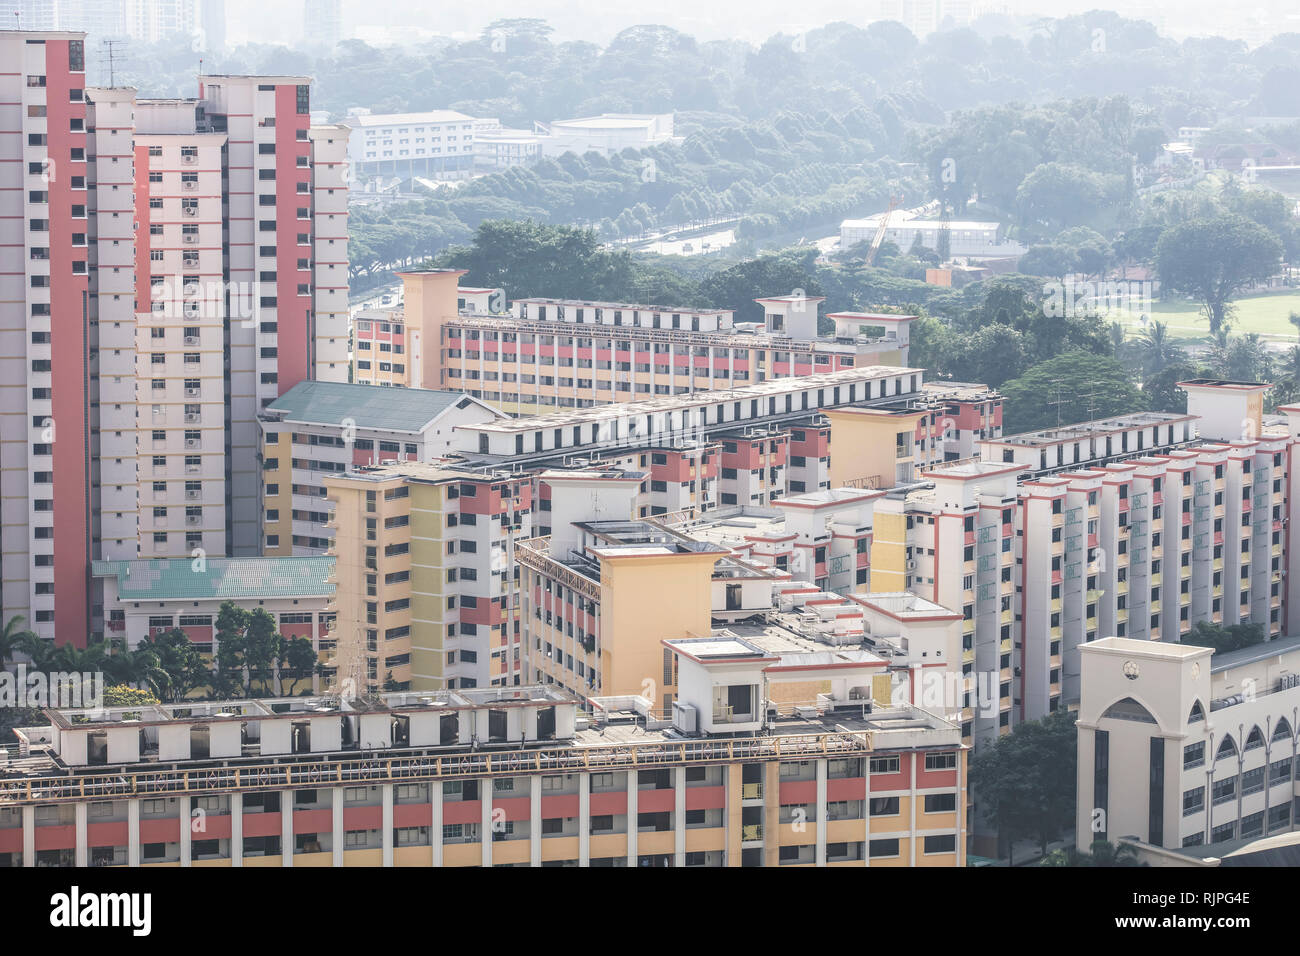 Singapore / Singapore - January 15 2019: Singapore Toa Payoh Balestier high density buildings aerial view in elegant retro muted colours Stock Photo